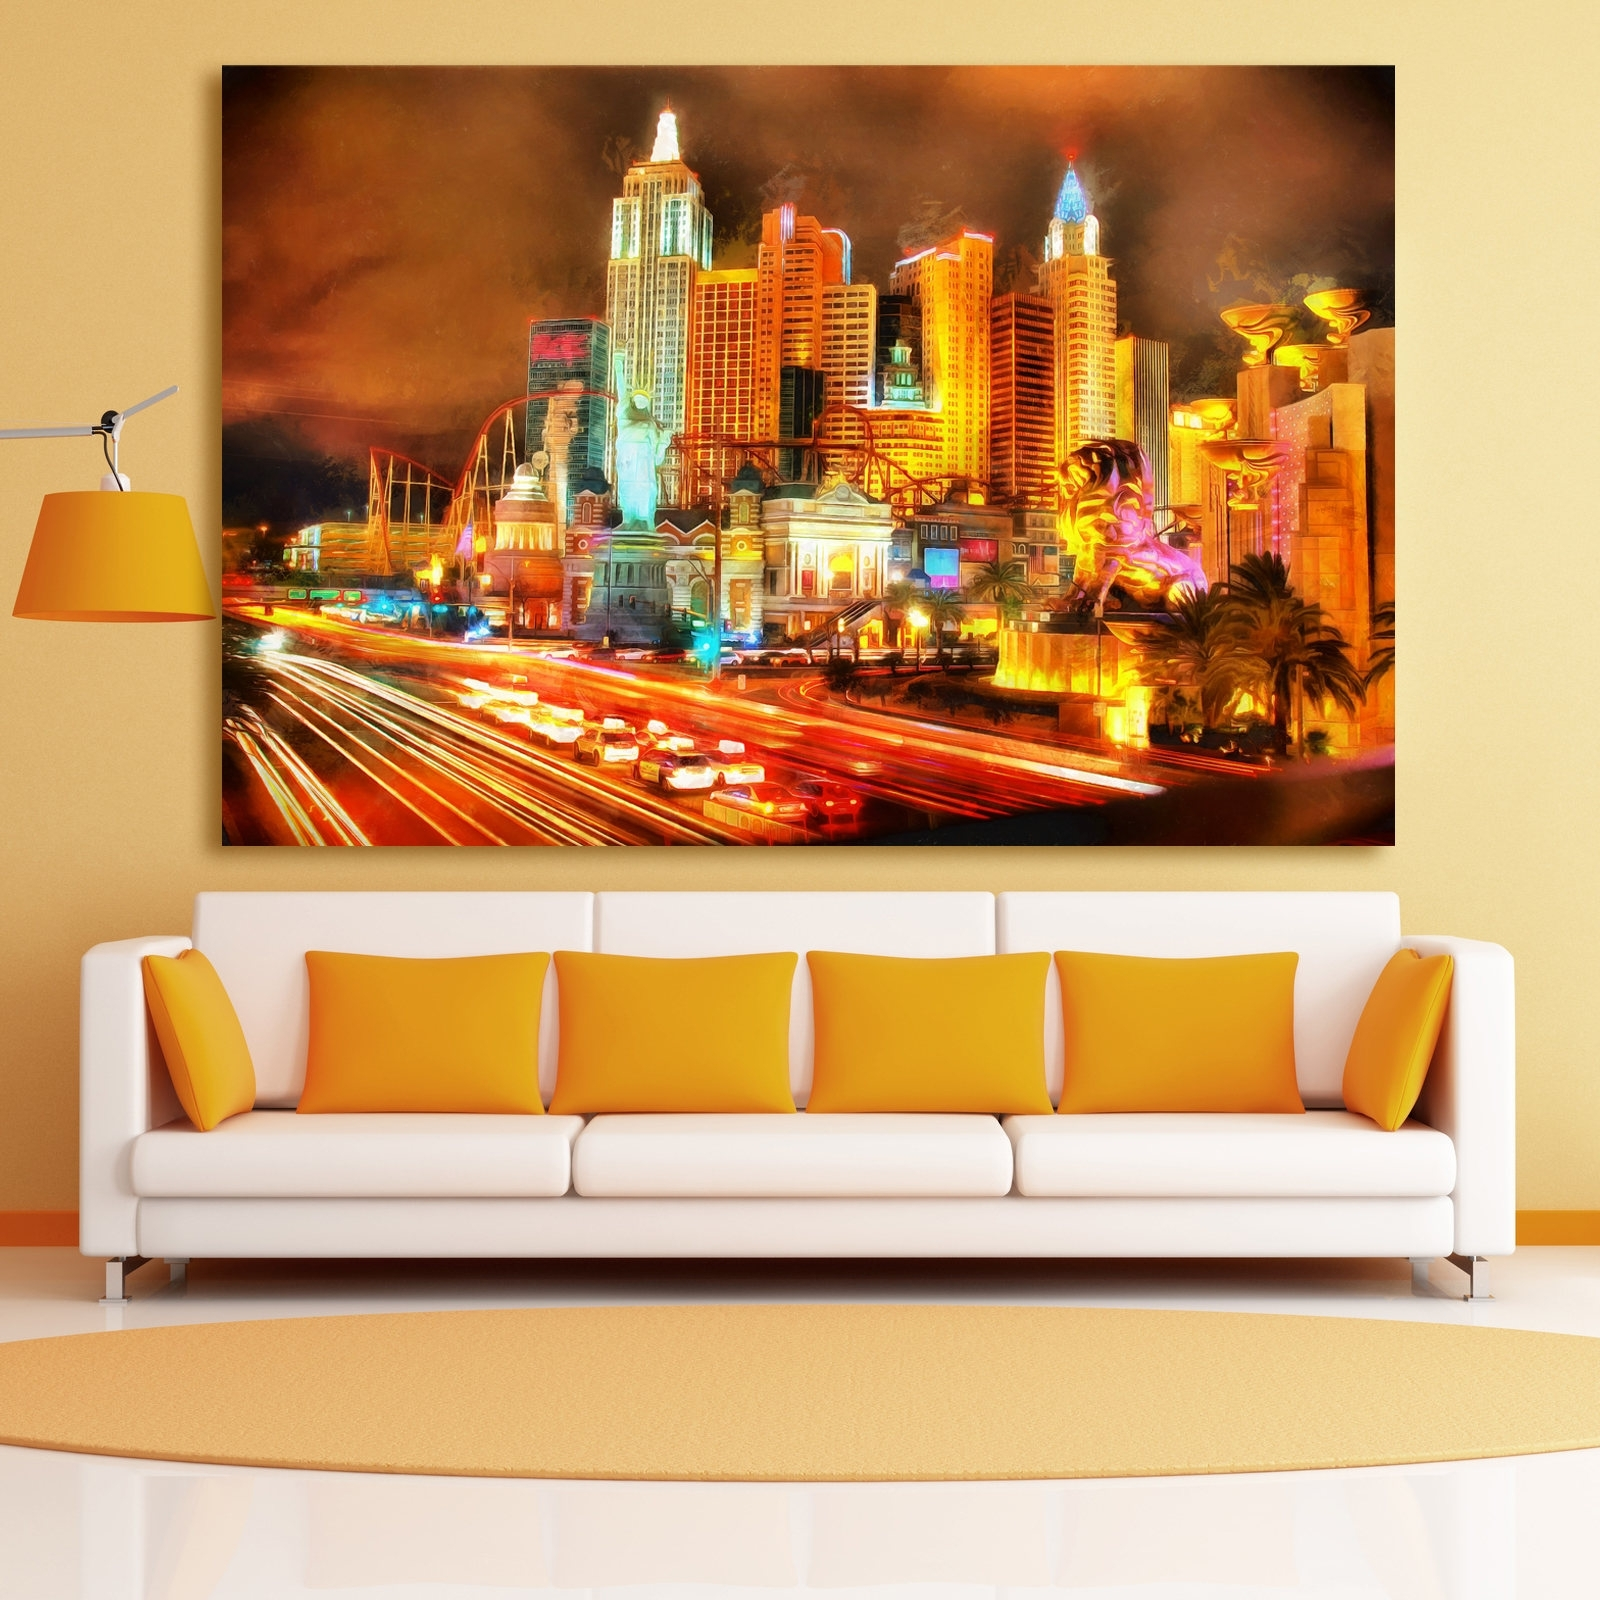 Las Vegas Night Skyline Canvas, Large Art Wall Oil Painting, Las Pertaining To Current Las Vegas Canvas Wall Art (Gallery 12 of 15)